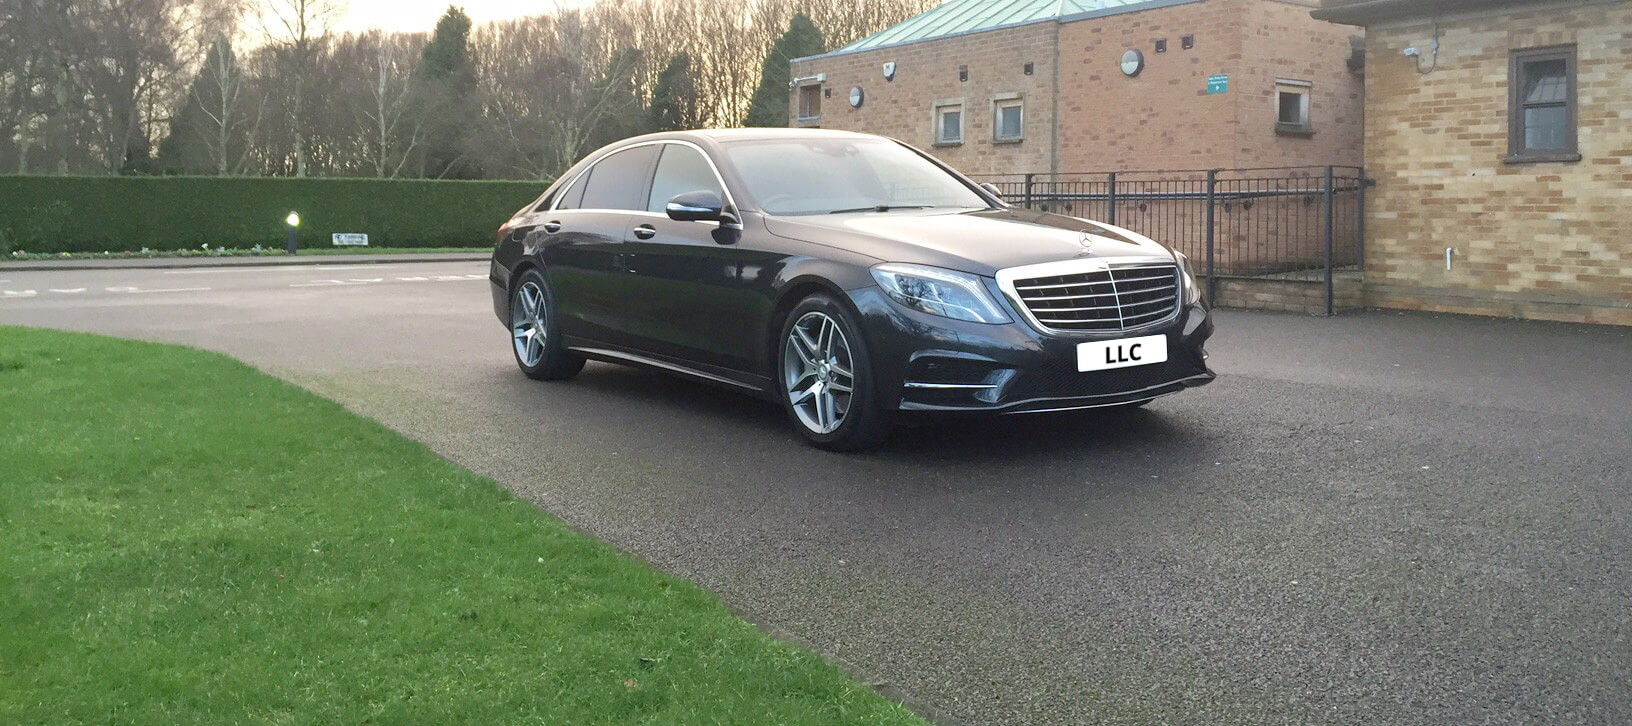 Mercedes S Class - Chauffeured Luxury Vehicle